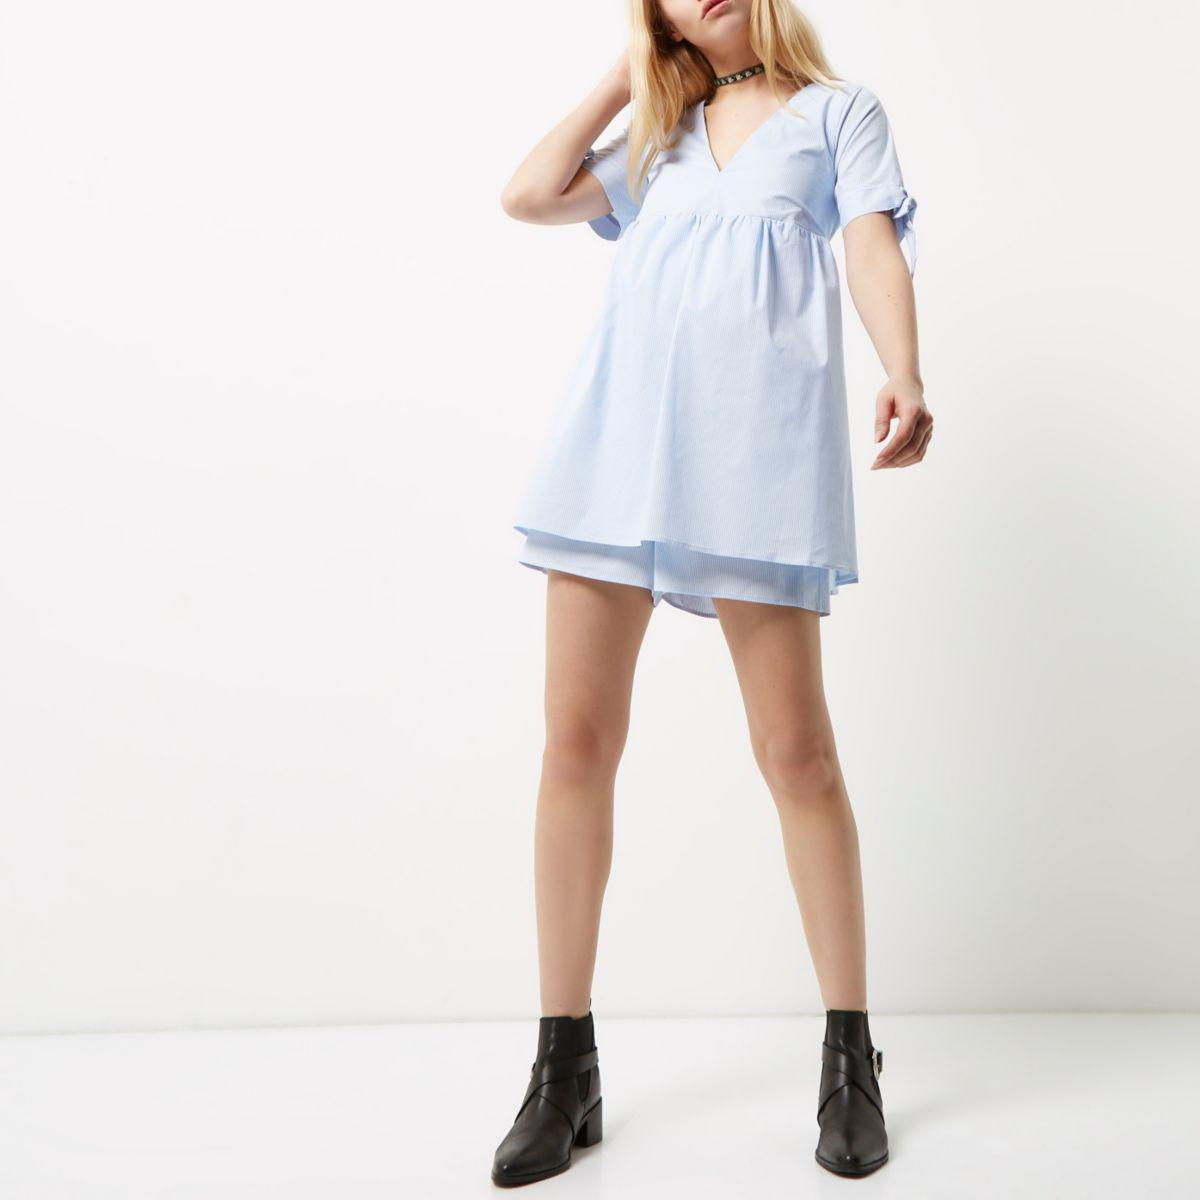 a24c24cac90 Lyst - River Island Blue Stripe Tie Sleeve Babydoll Playsuit in Blue